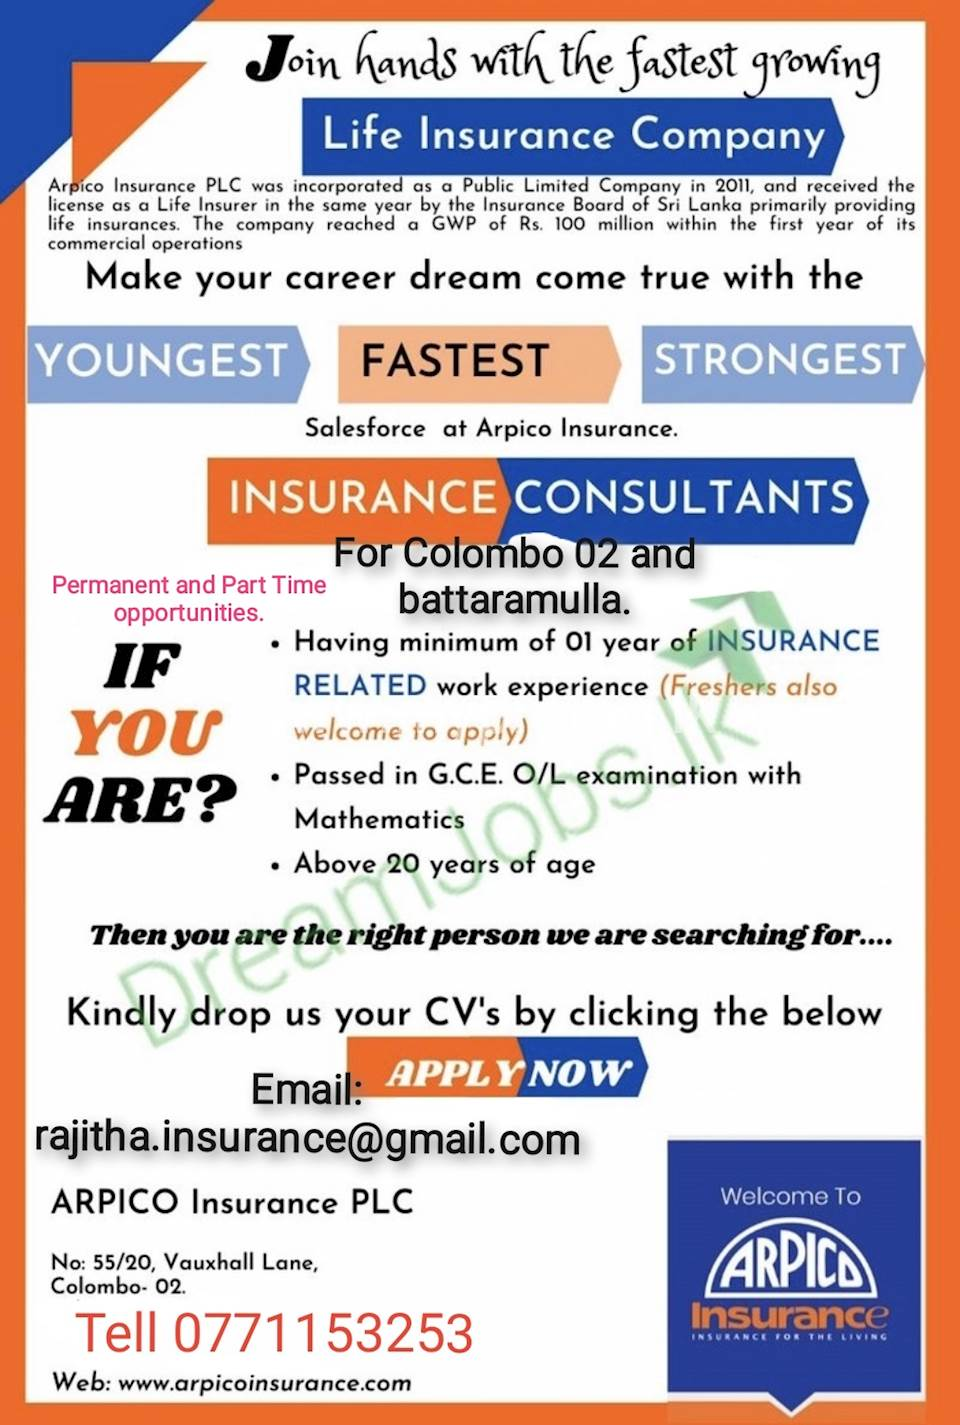 Life Insurance Consultant and Sales Executives..